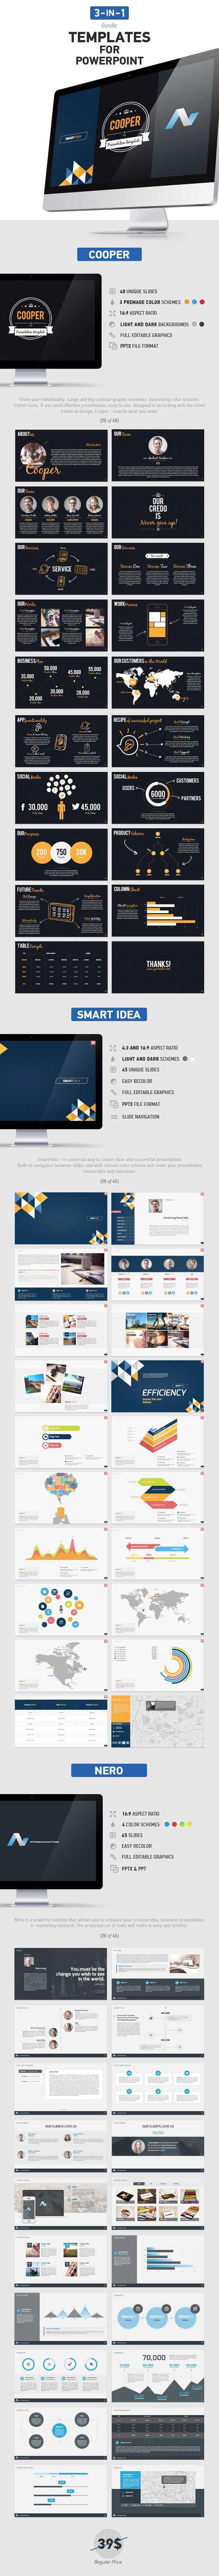 GraphicRiver 3 in 1 PowerPoint Bundle 8842008